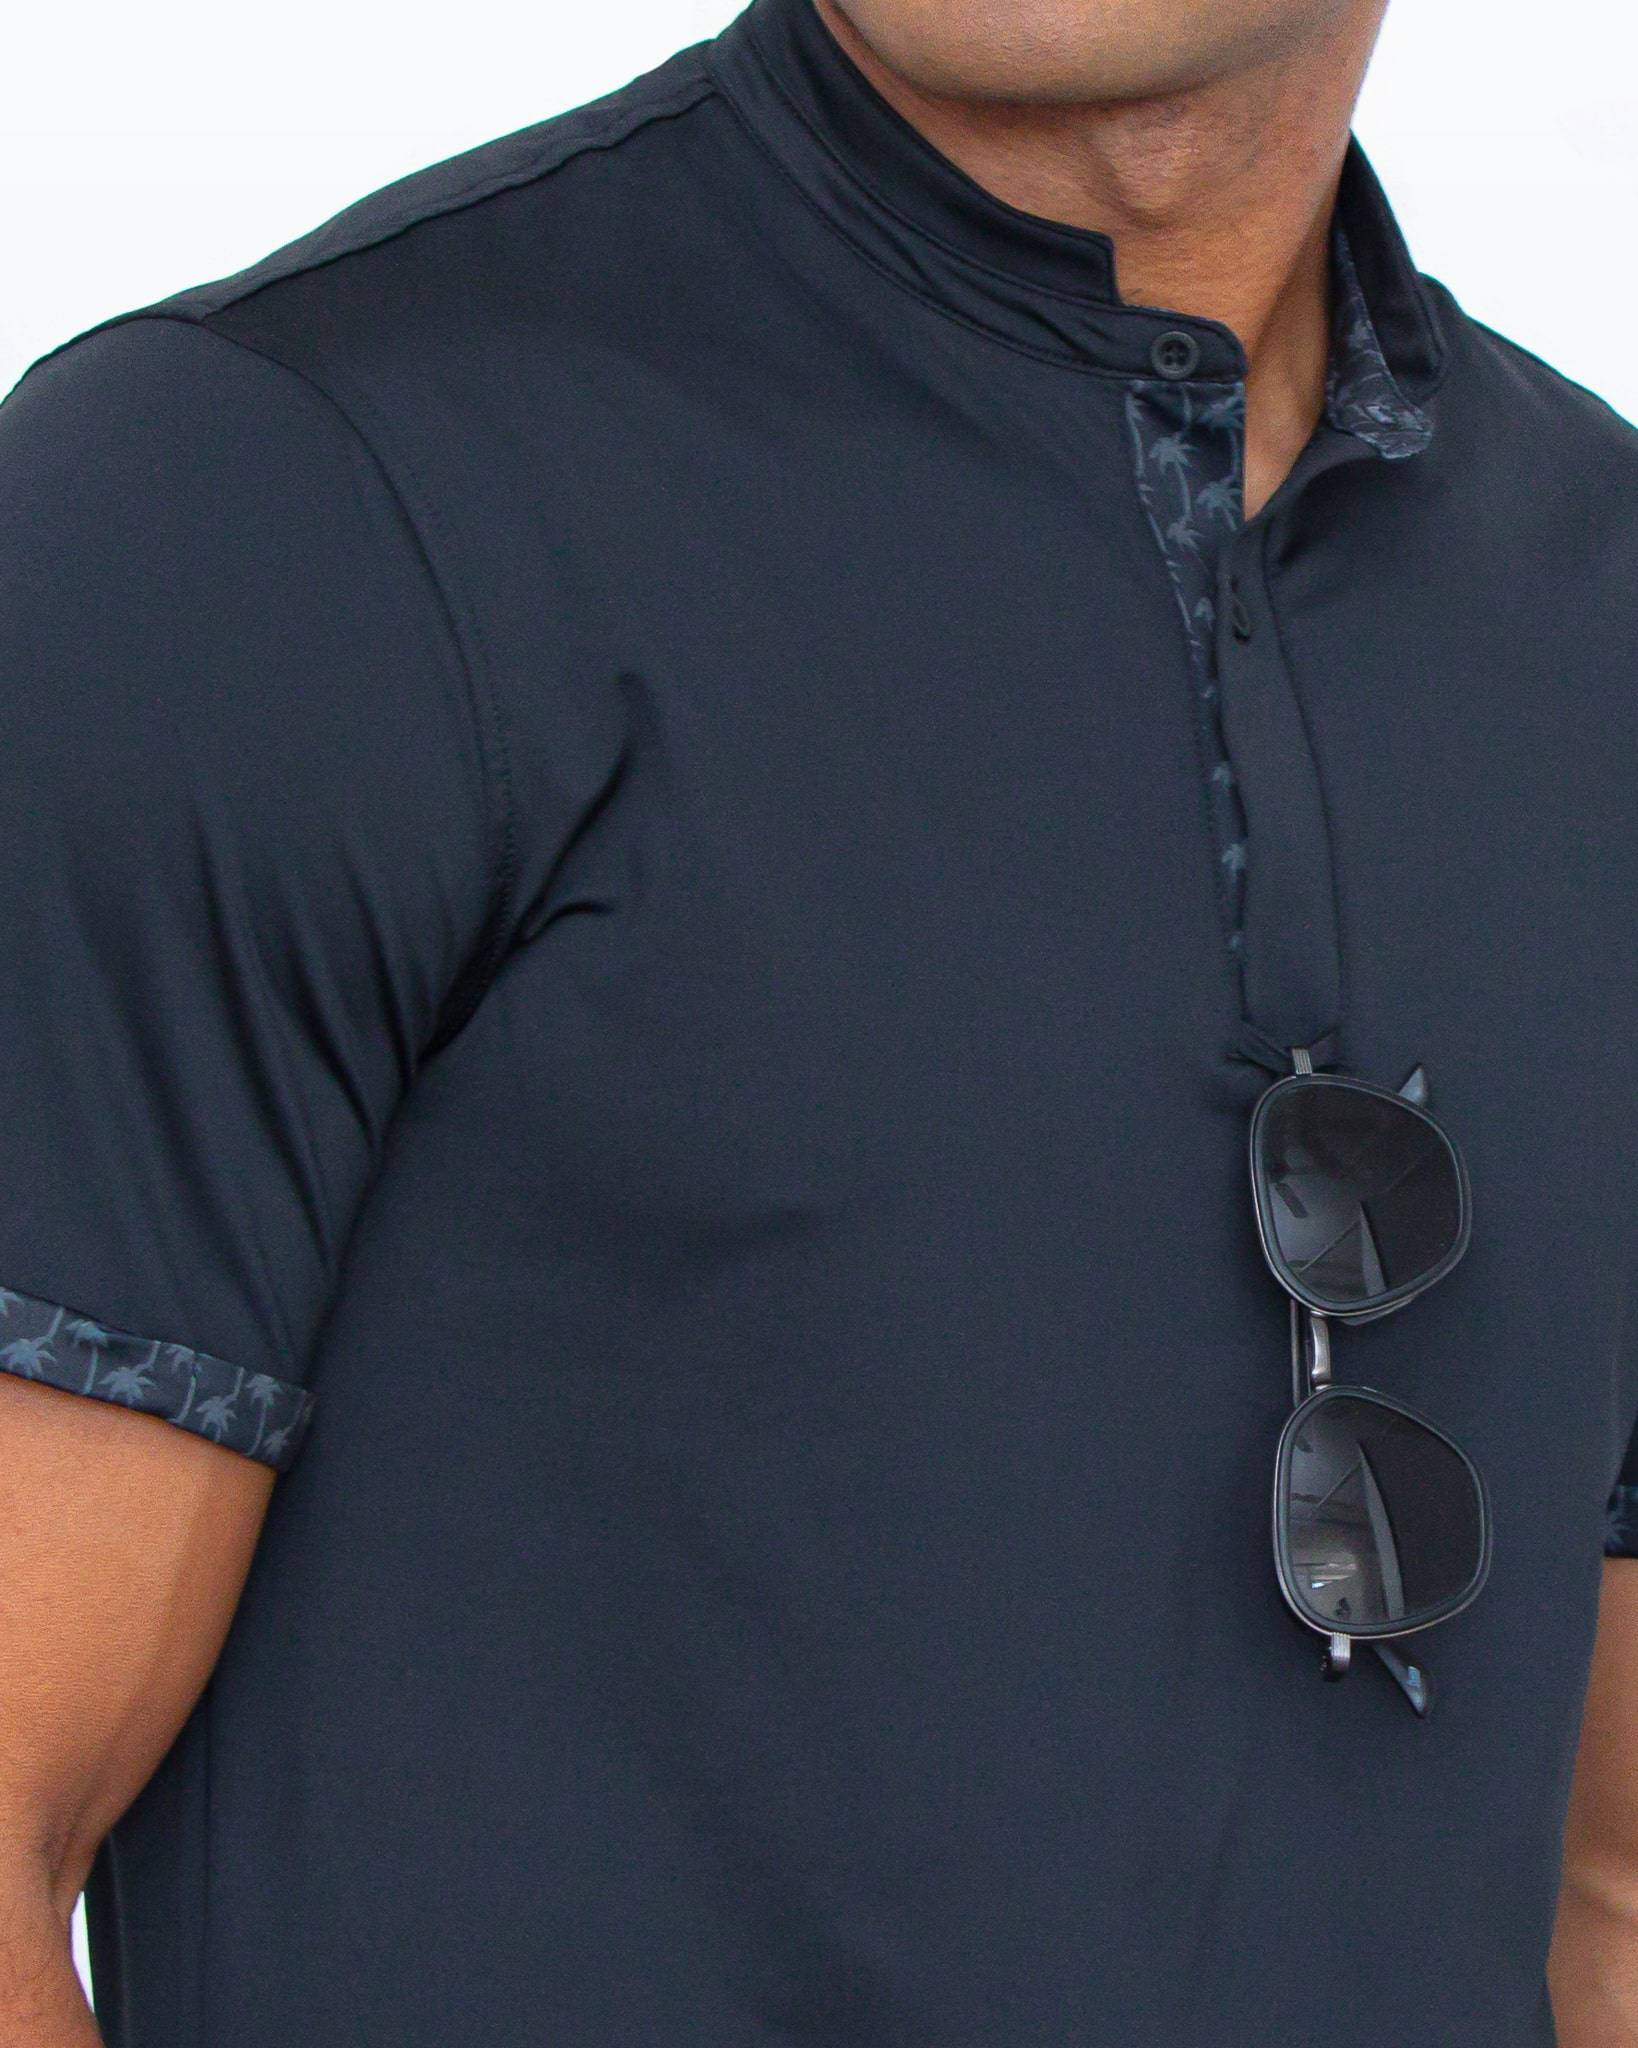 MANTRA Palm Contrast Polo - sustainable mens polo made in the USA from repurposed materials